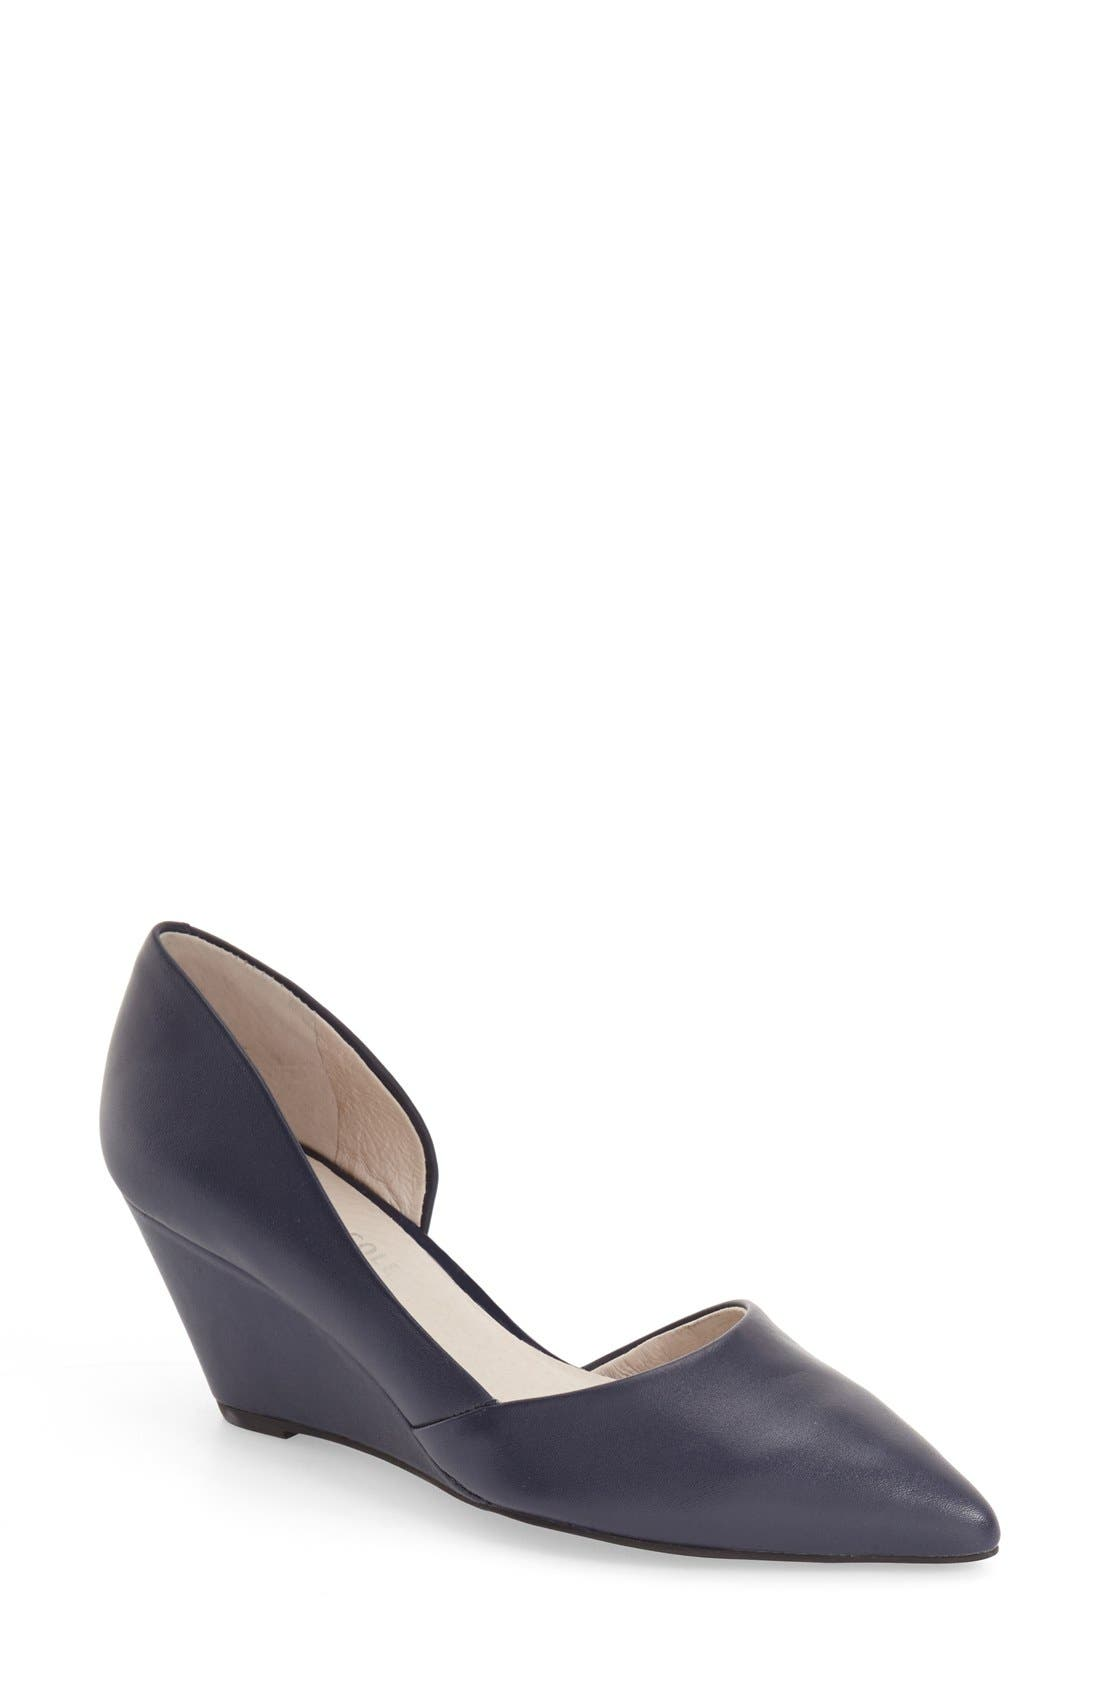 Main Image - Kenneth Cole New York 'Ellis' Half d'Orsay Wedge Pump